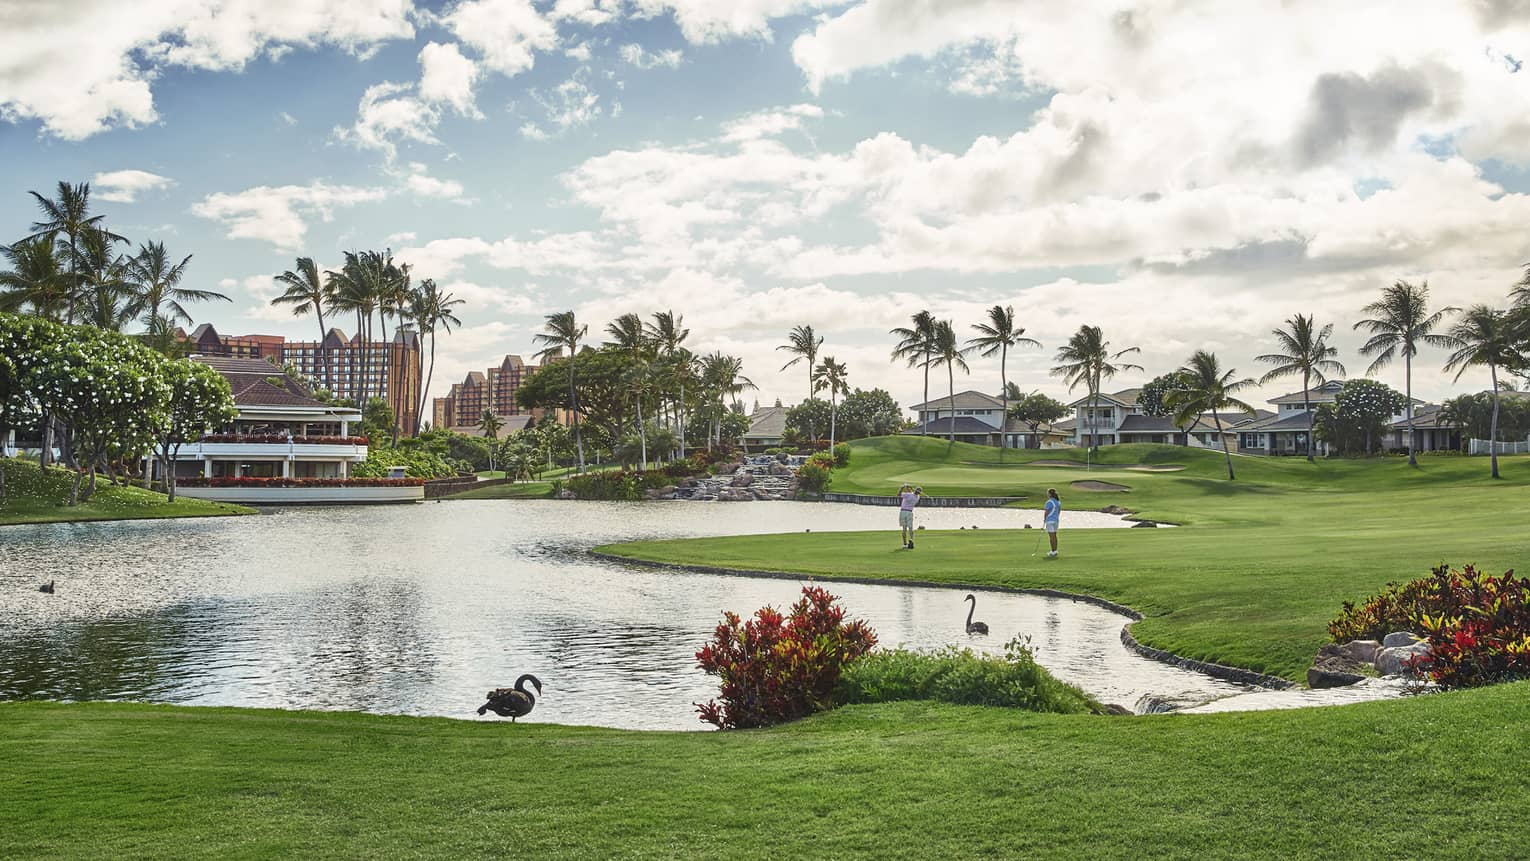 Golf course featuring a irregular shaped pond, tropical bushes, palm trees in the distance